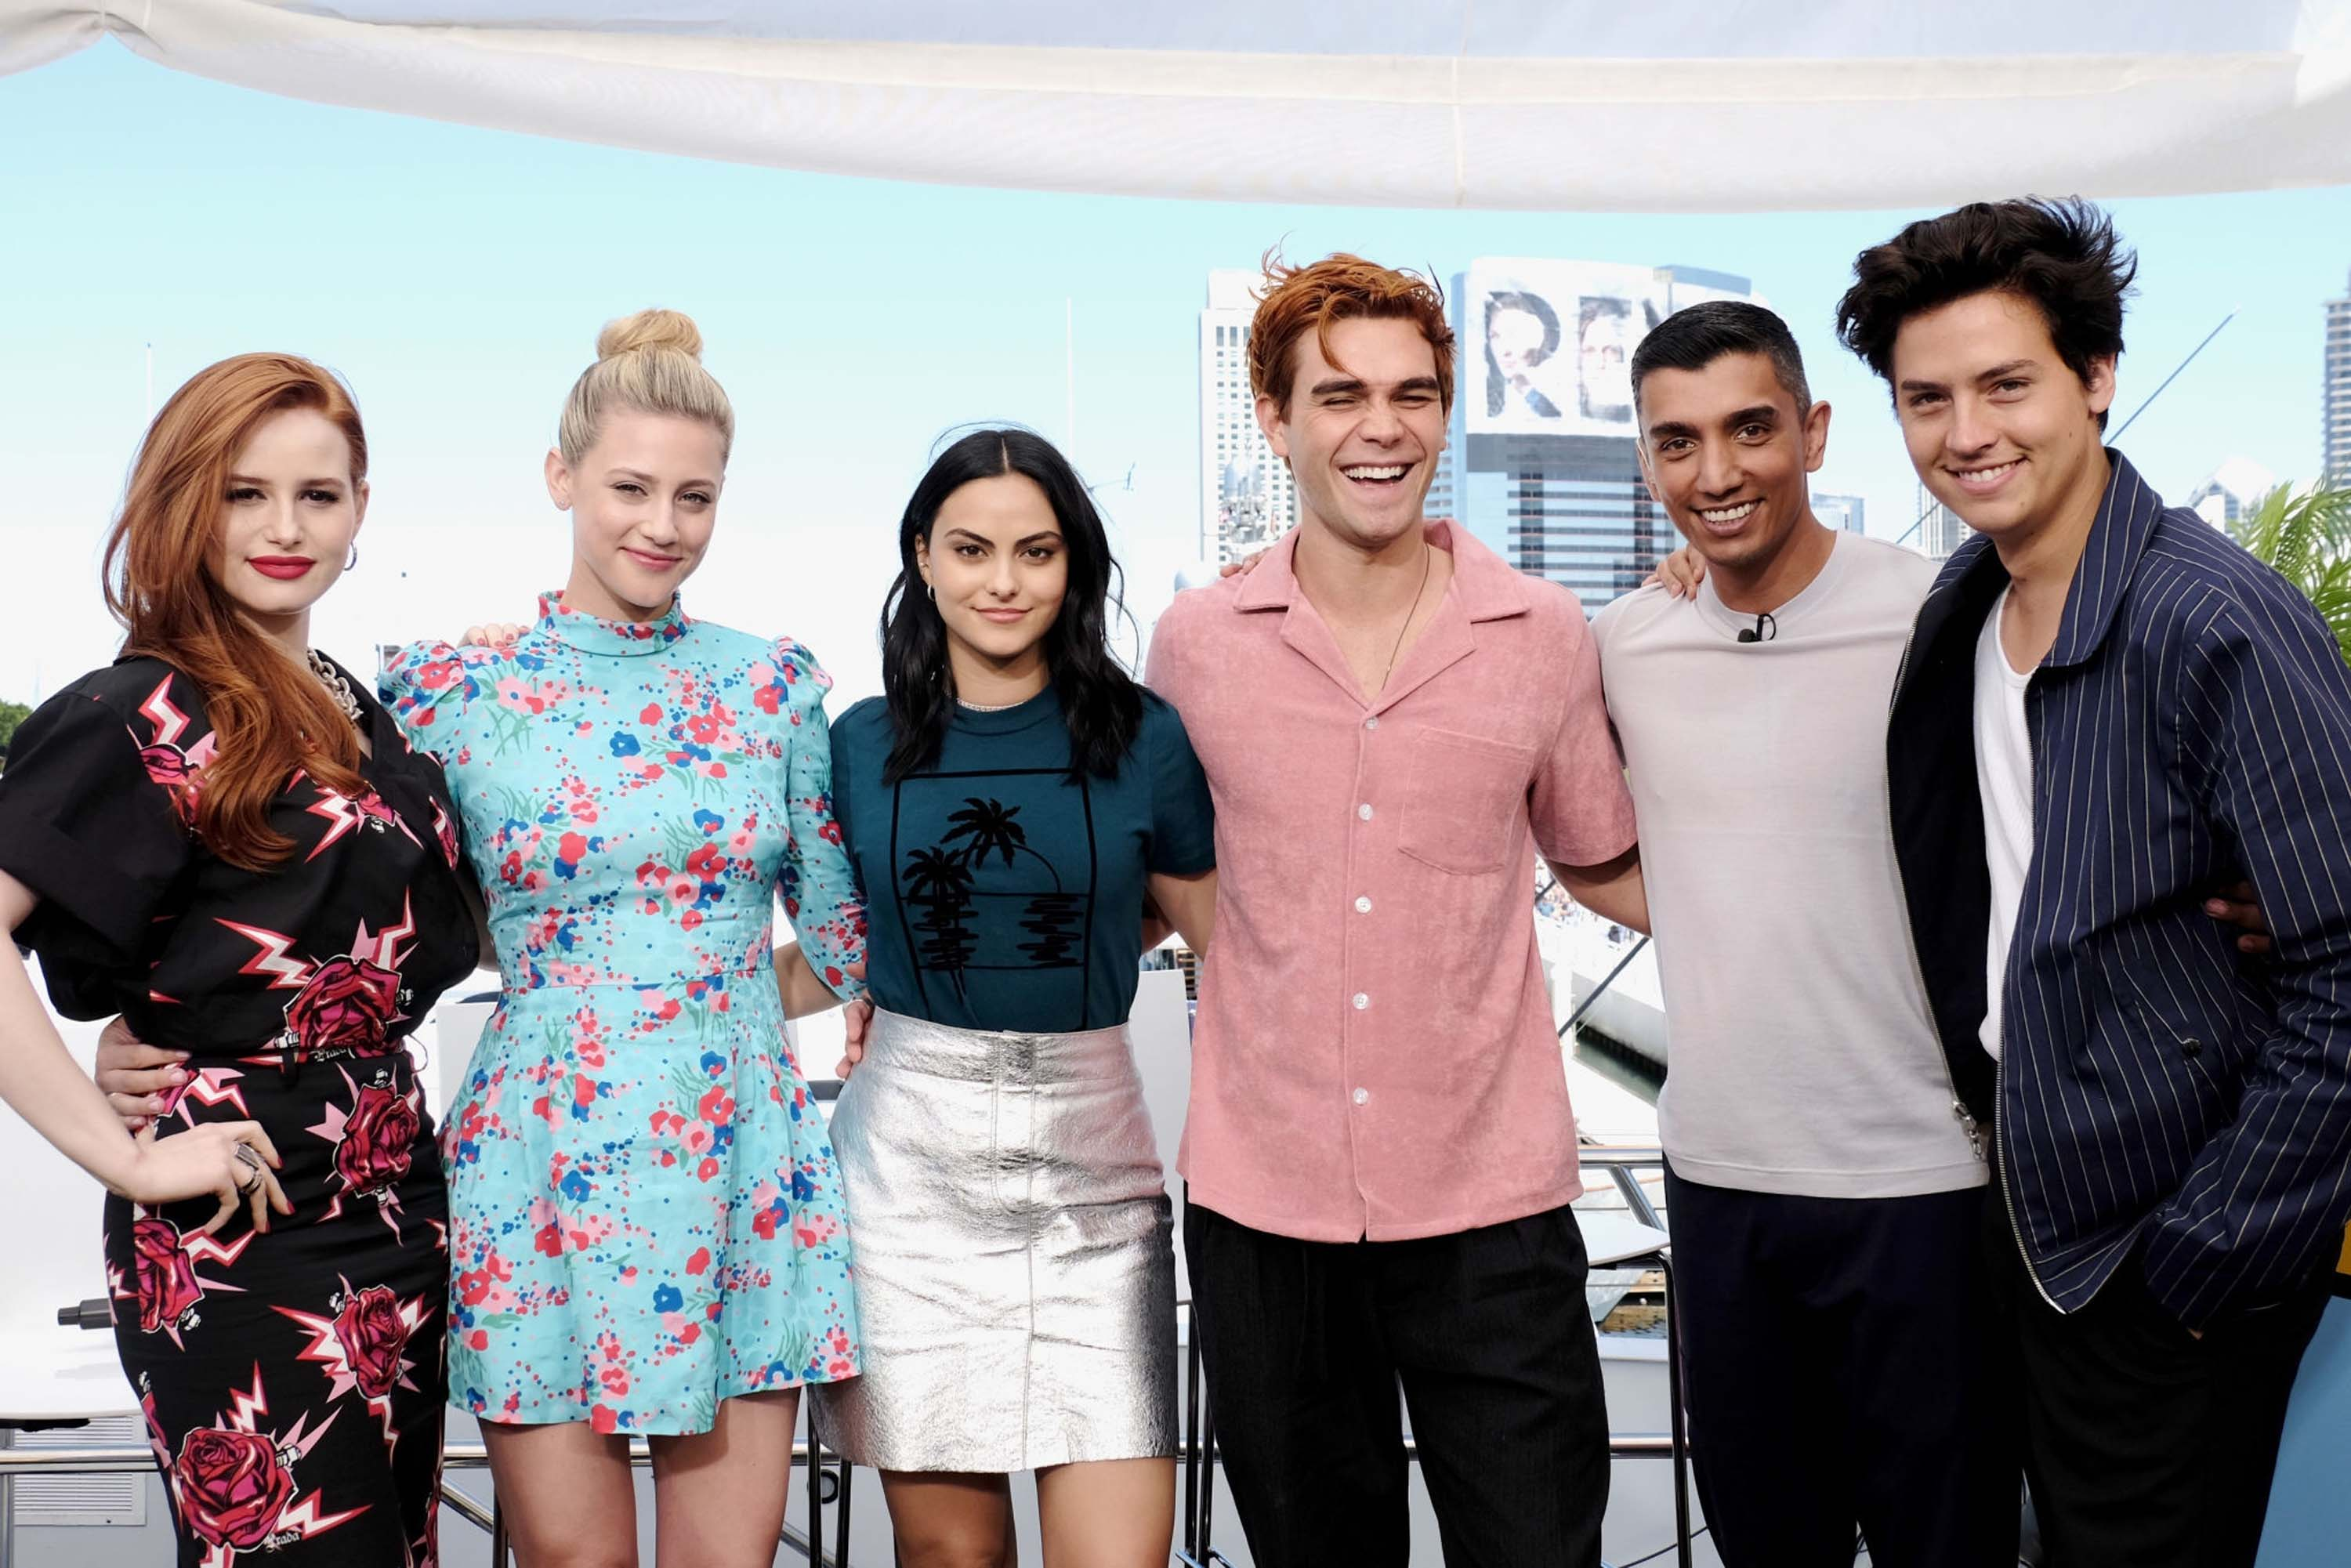 Camila Mendes attends IMDboat At San Diego Comic-Con